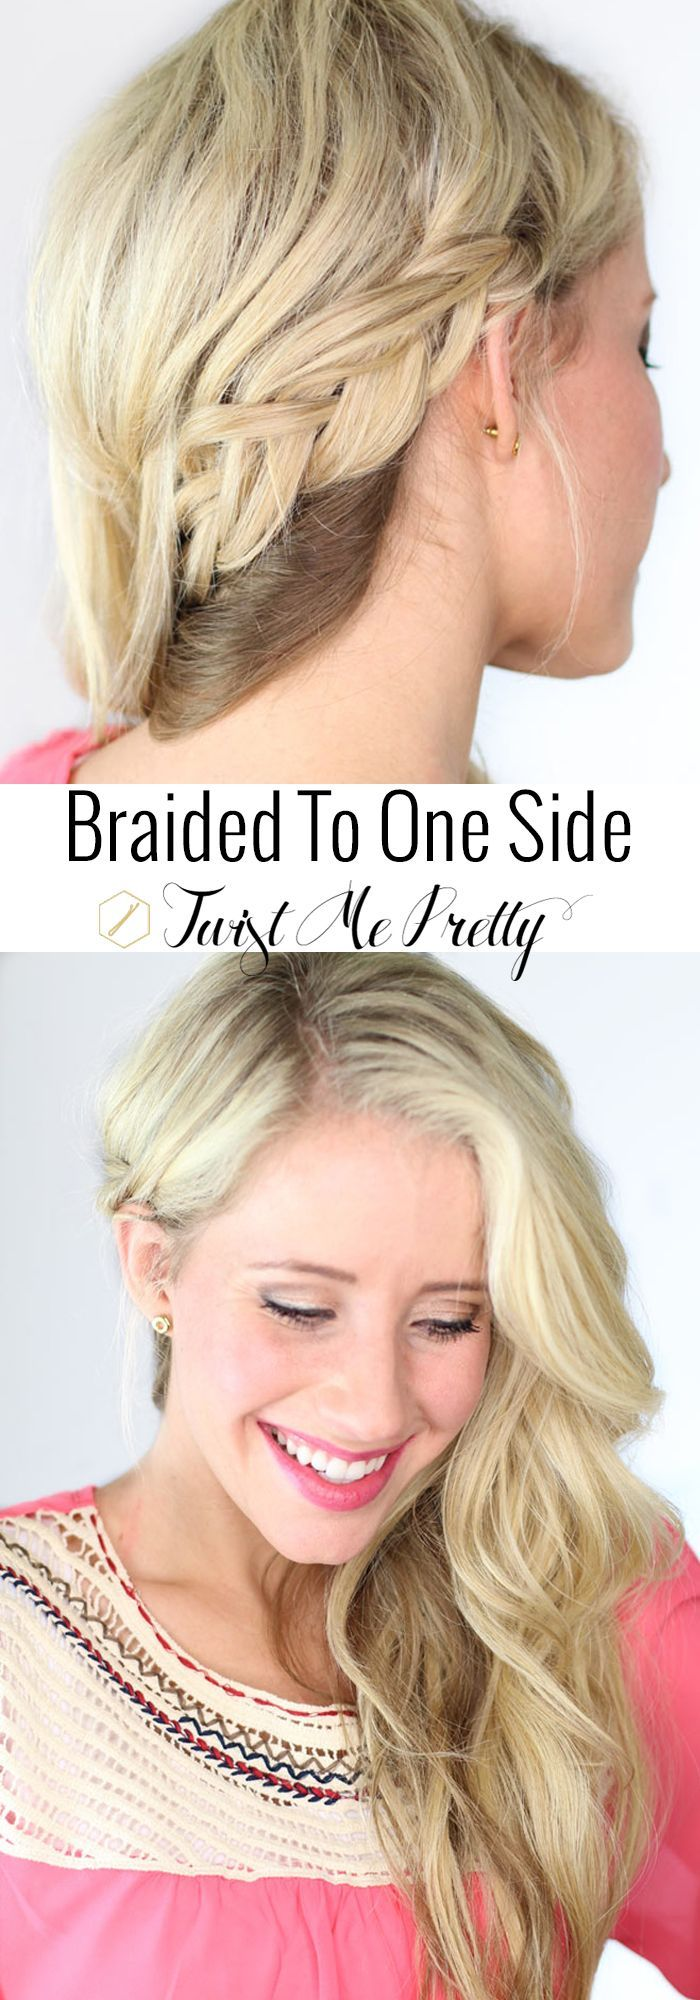 Pretty Simple Bandana Beauty: 1000+ Ideas About One Sided Braid On Pinterest